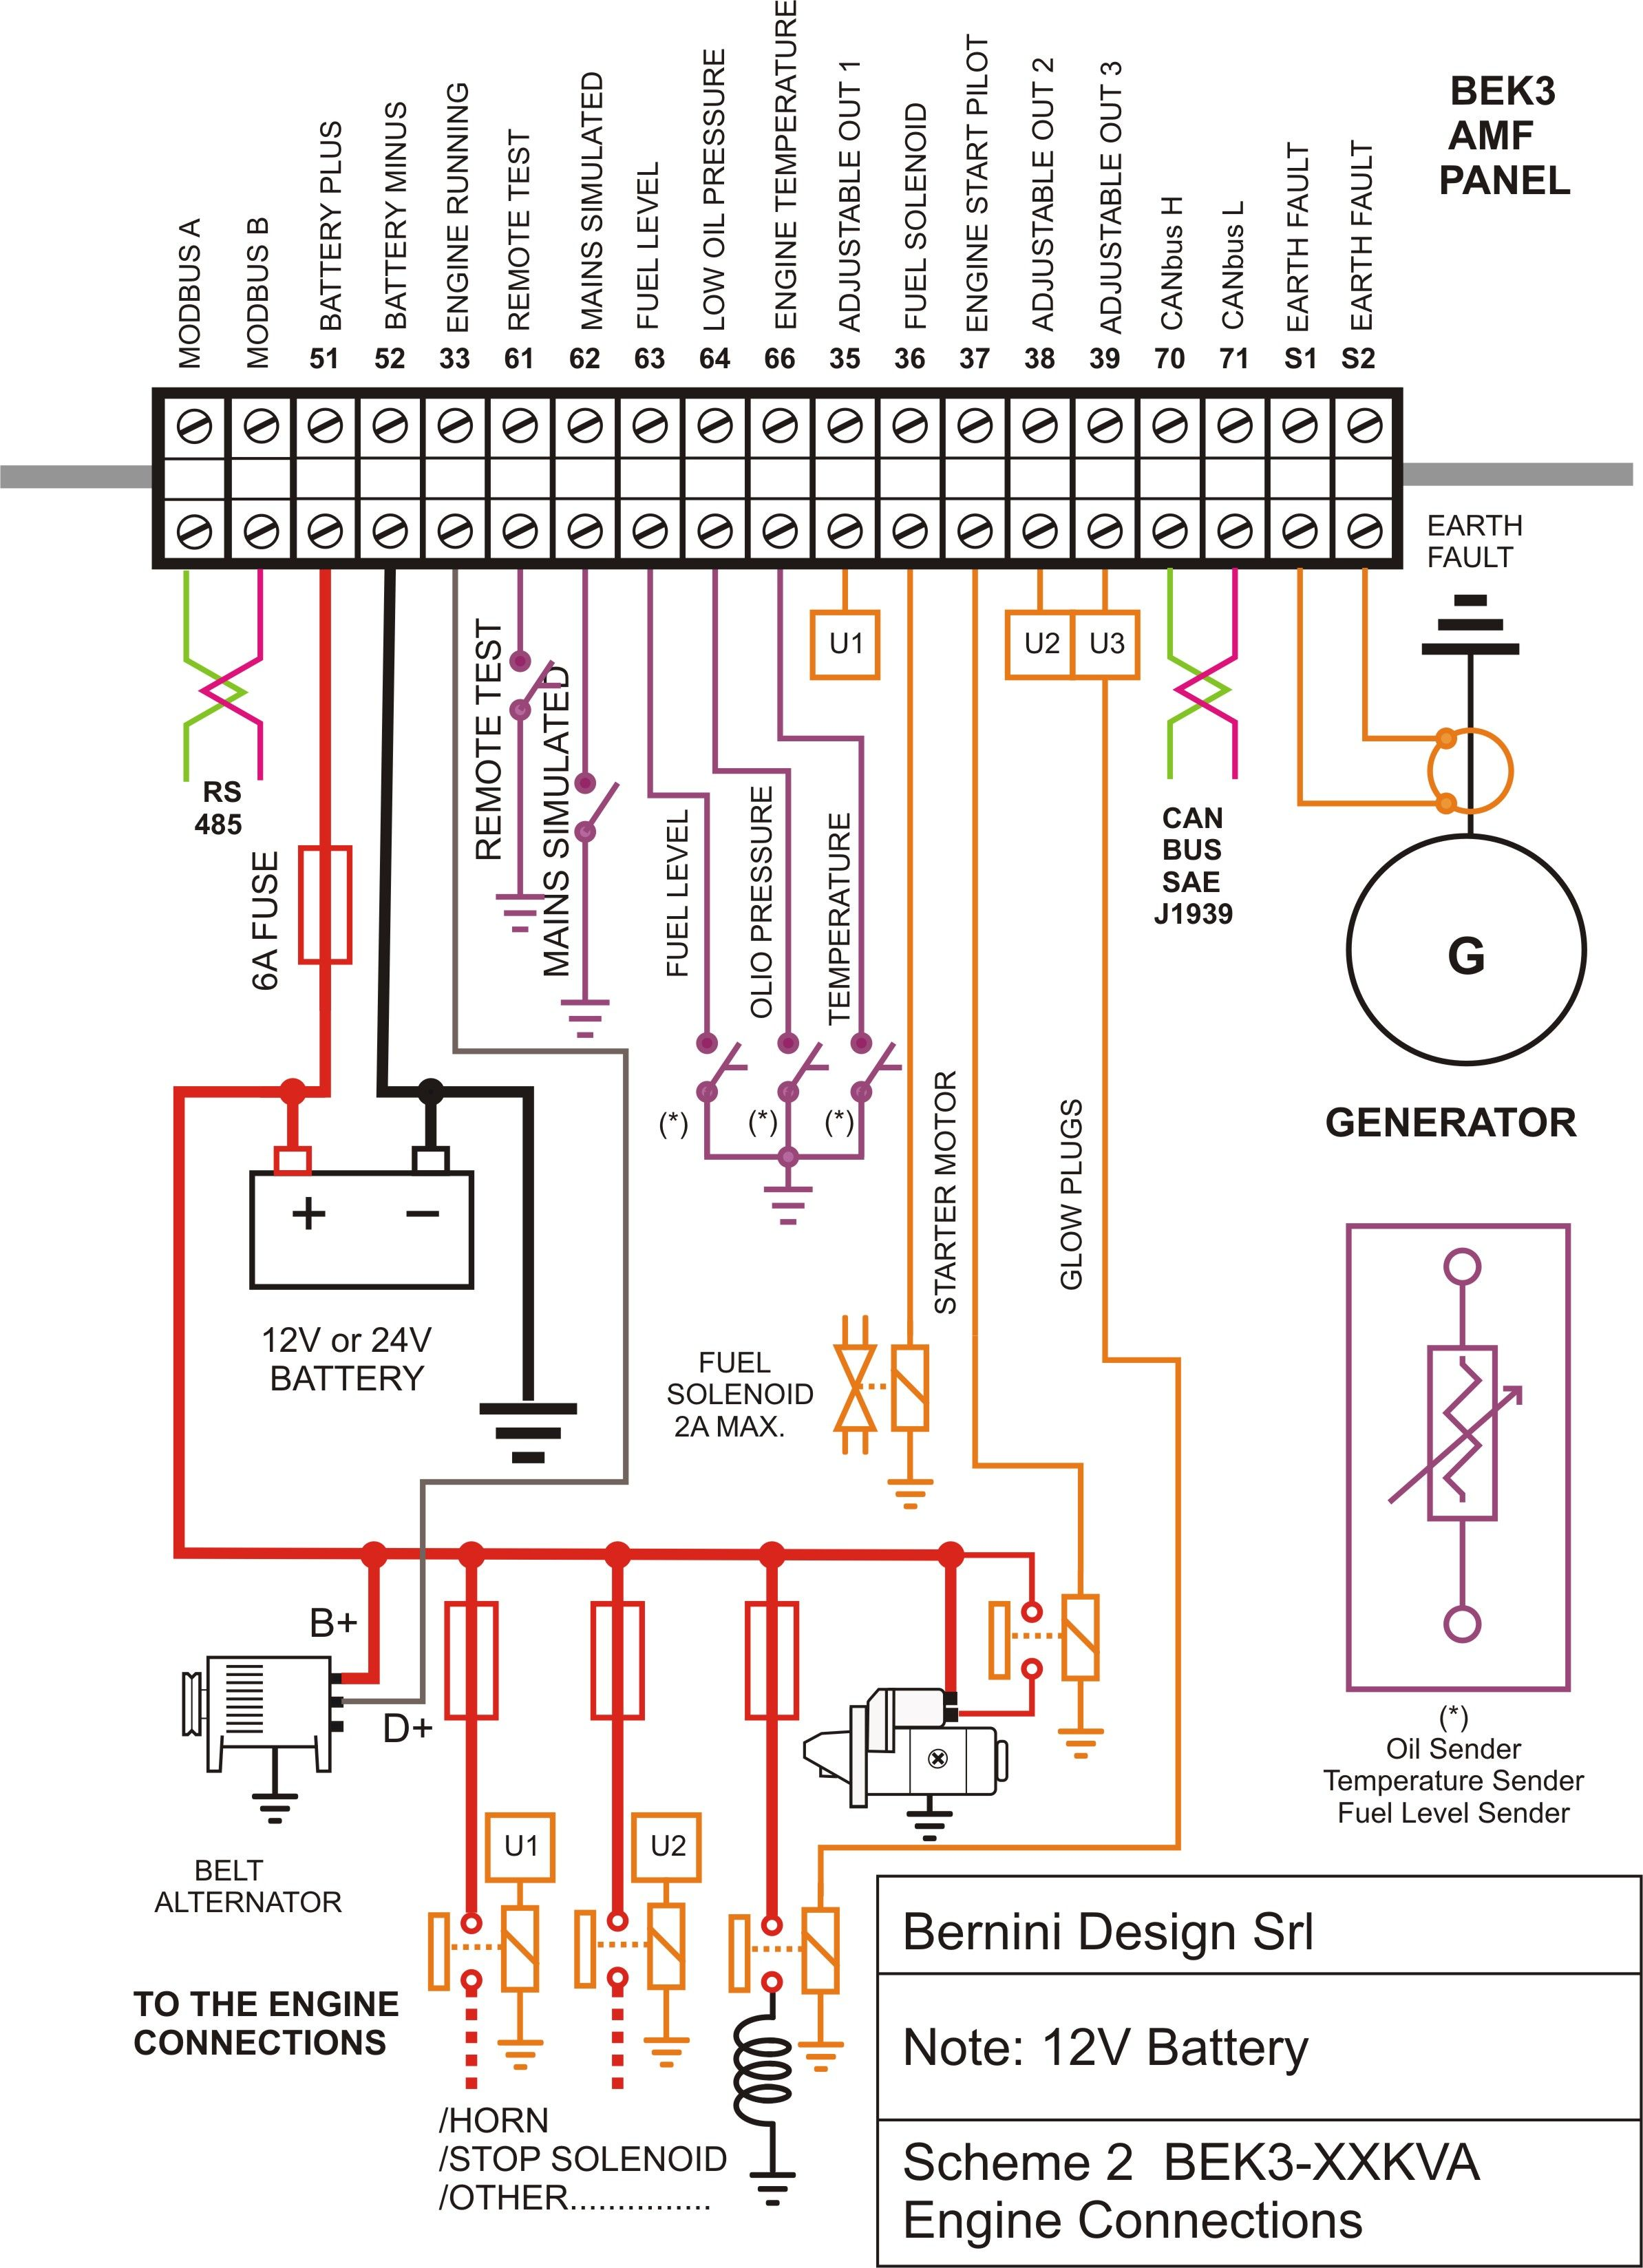 generator schematic wiring wiring diagrams Generator Fuel Gauge diesel generator control panel wiring diagram engine connections generator schematic